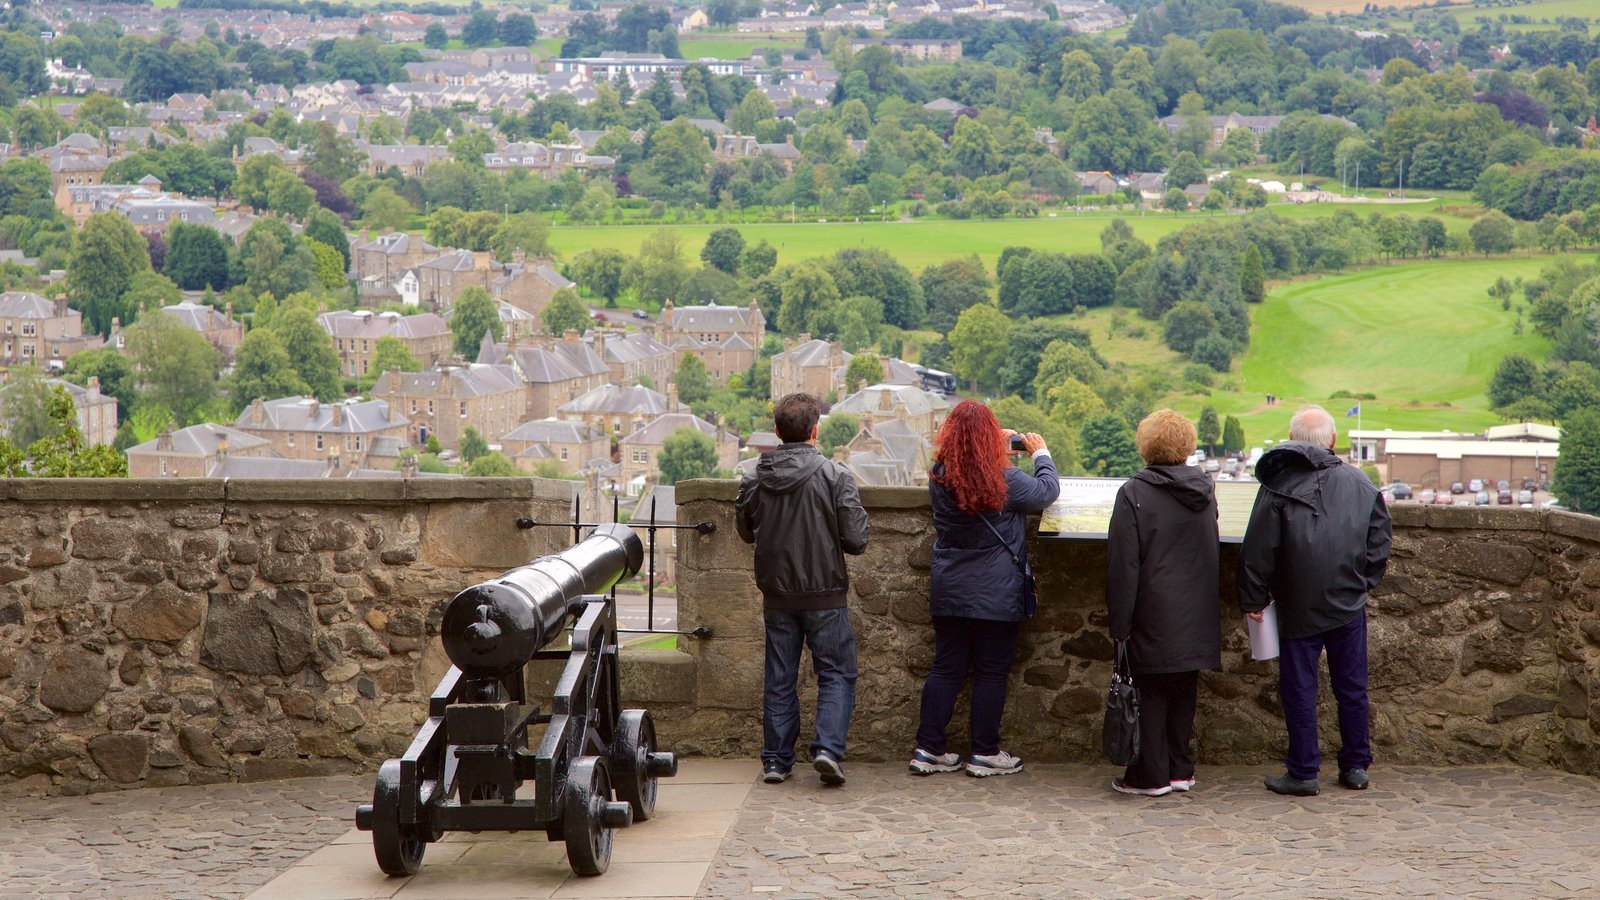 Stirling Castle featuring a small town or village, heritage elements and views